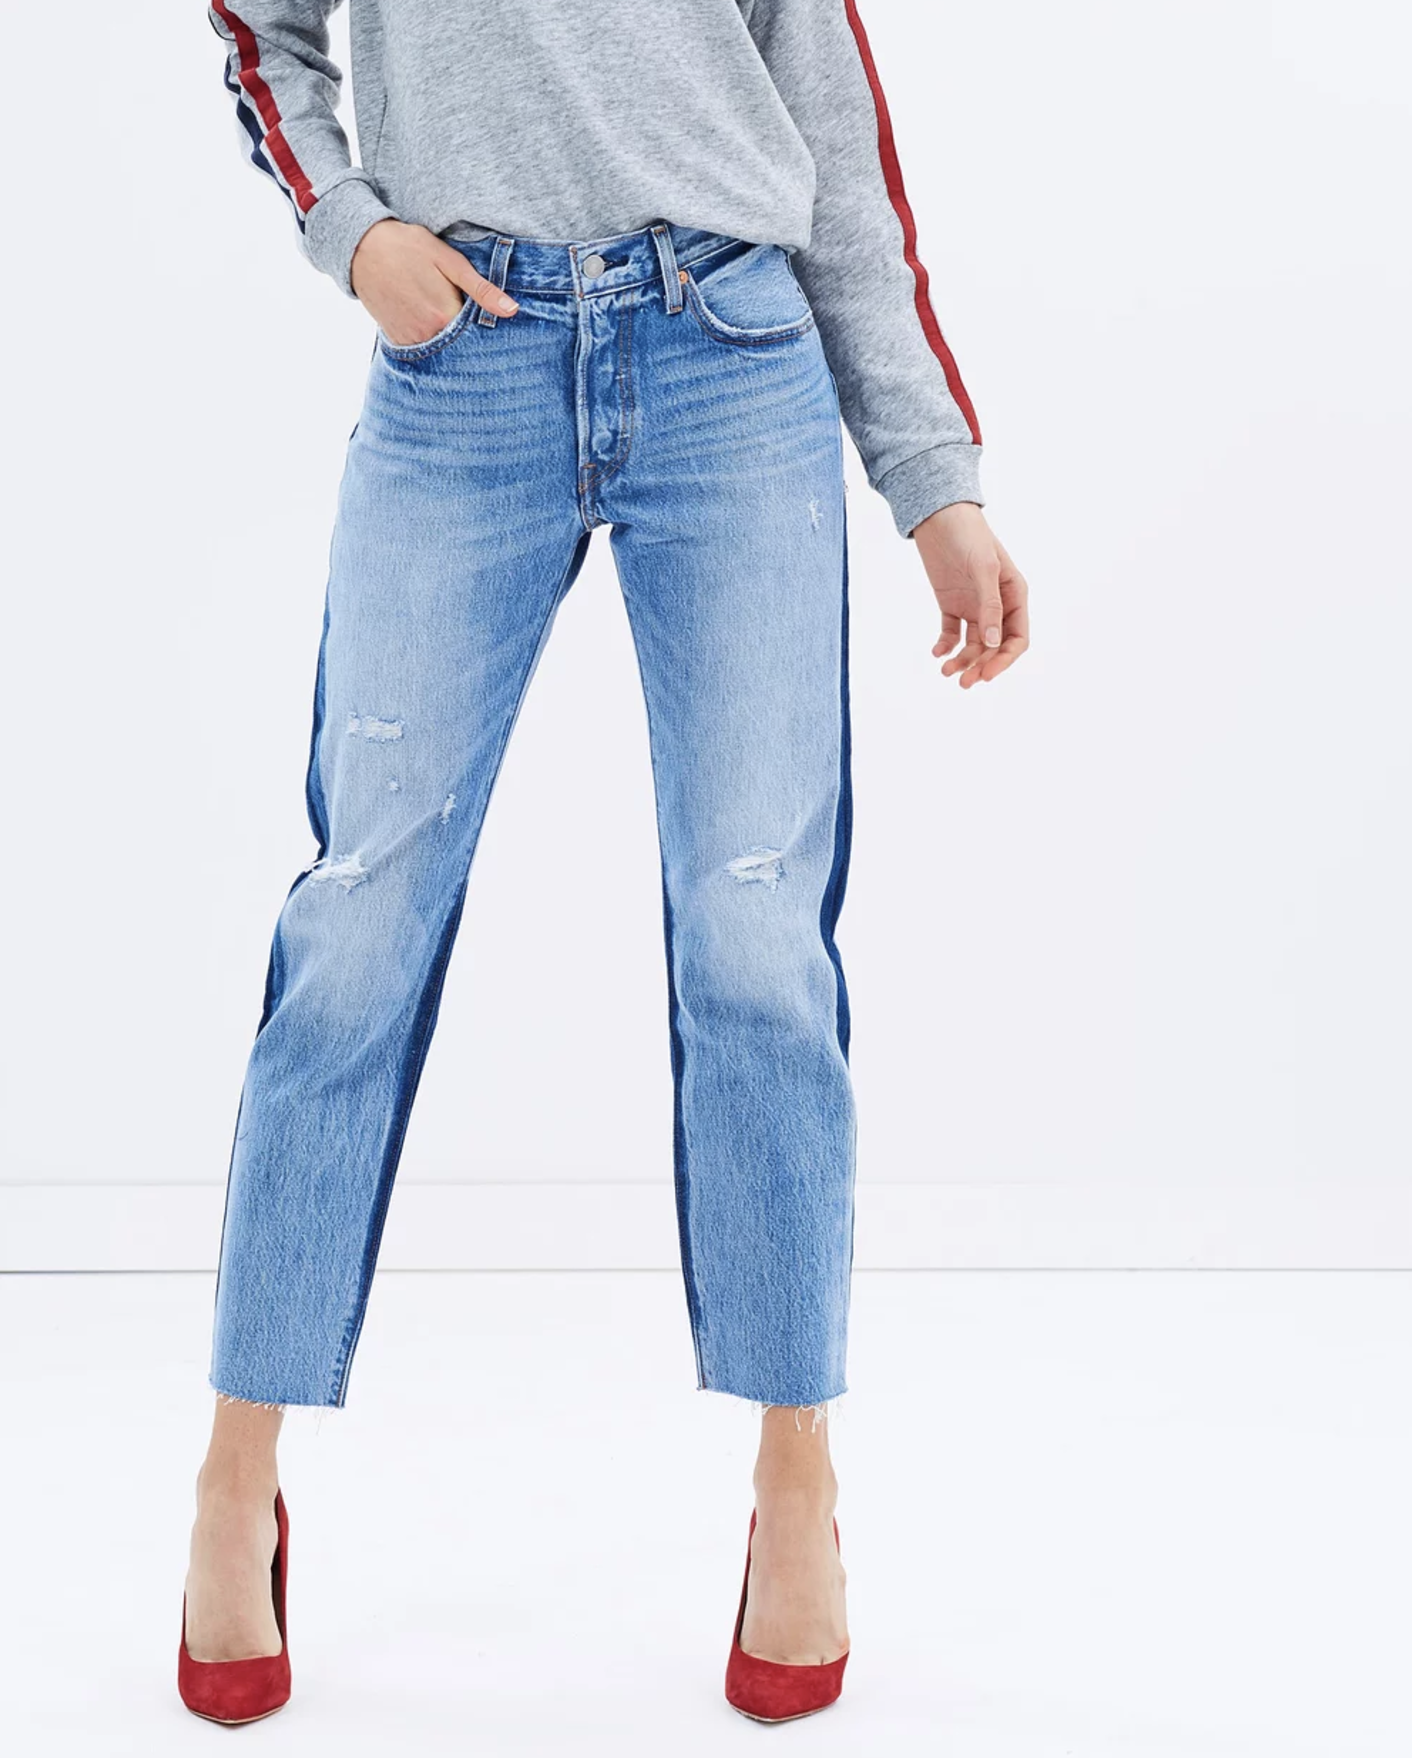 Levis 501 cropped jeans $149.95